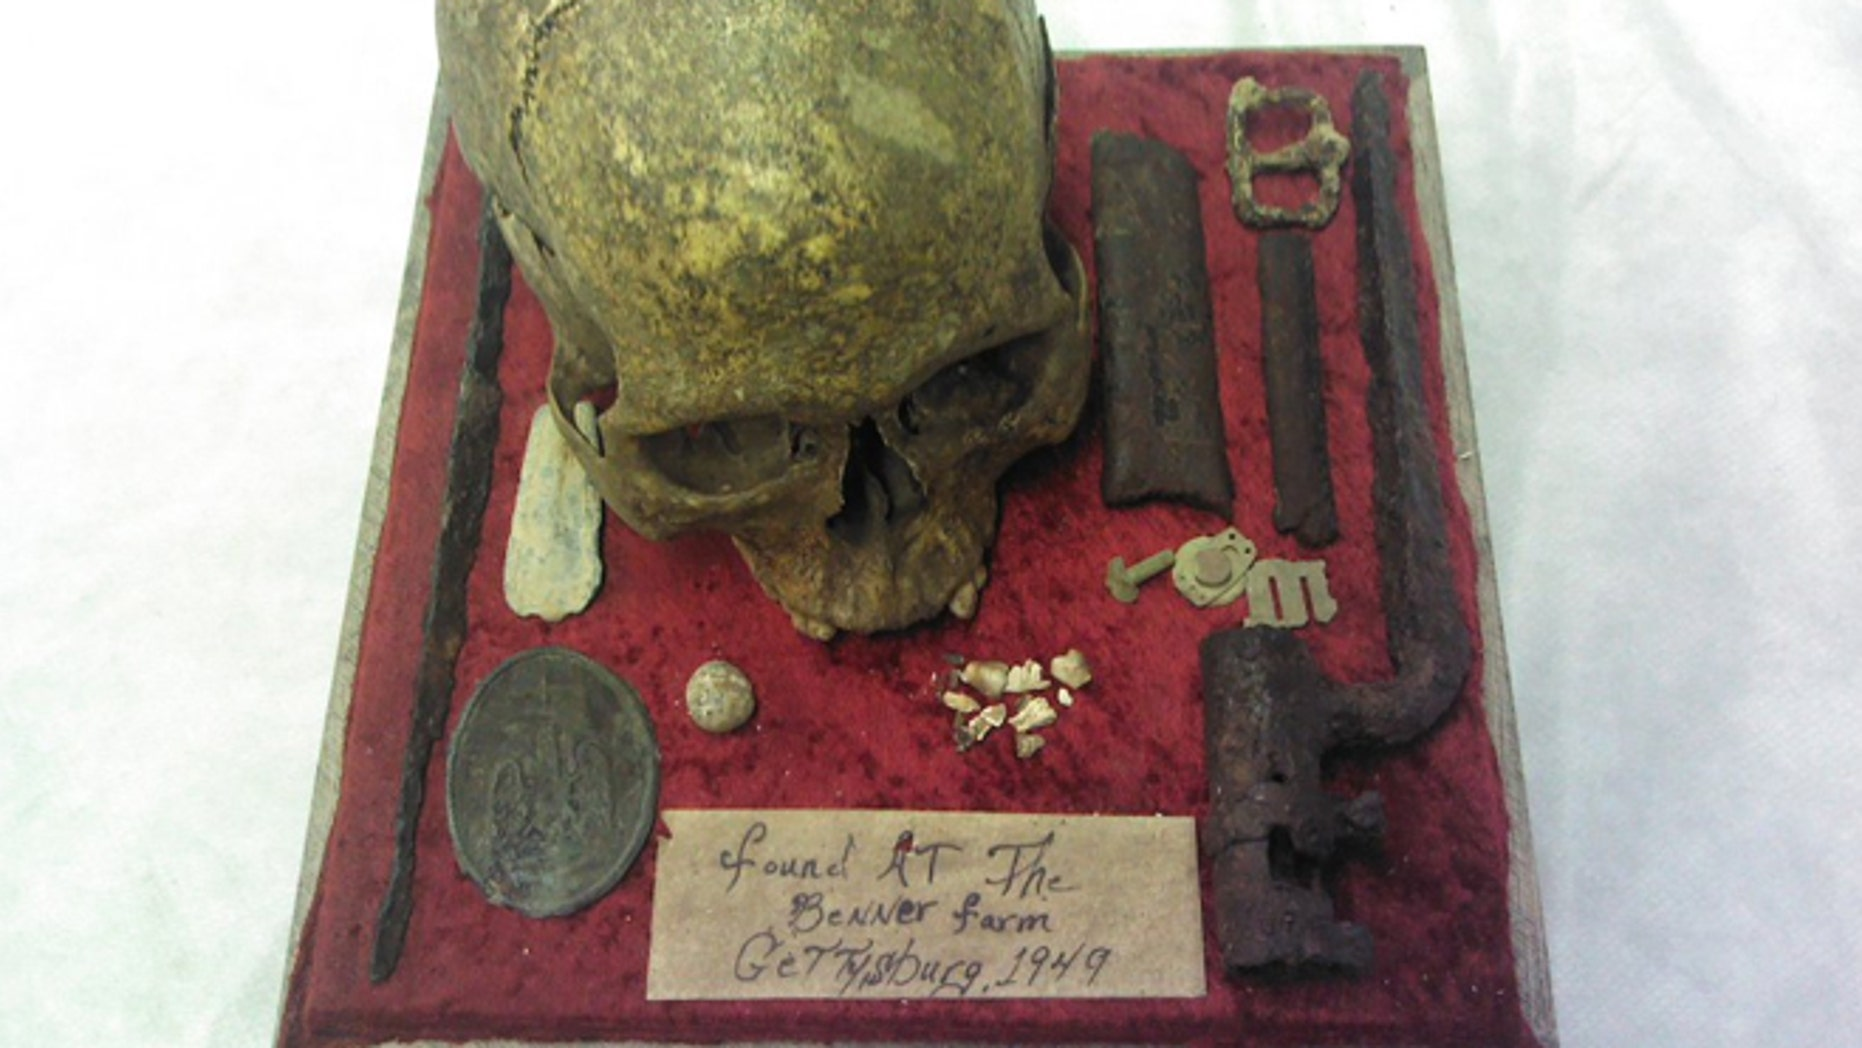 Estate Auction Company had hoped the auction of the skull would sell for between $50,000 and $250,000.